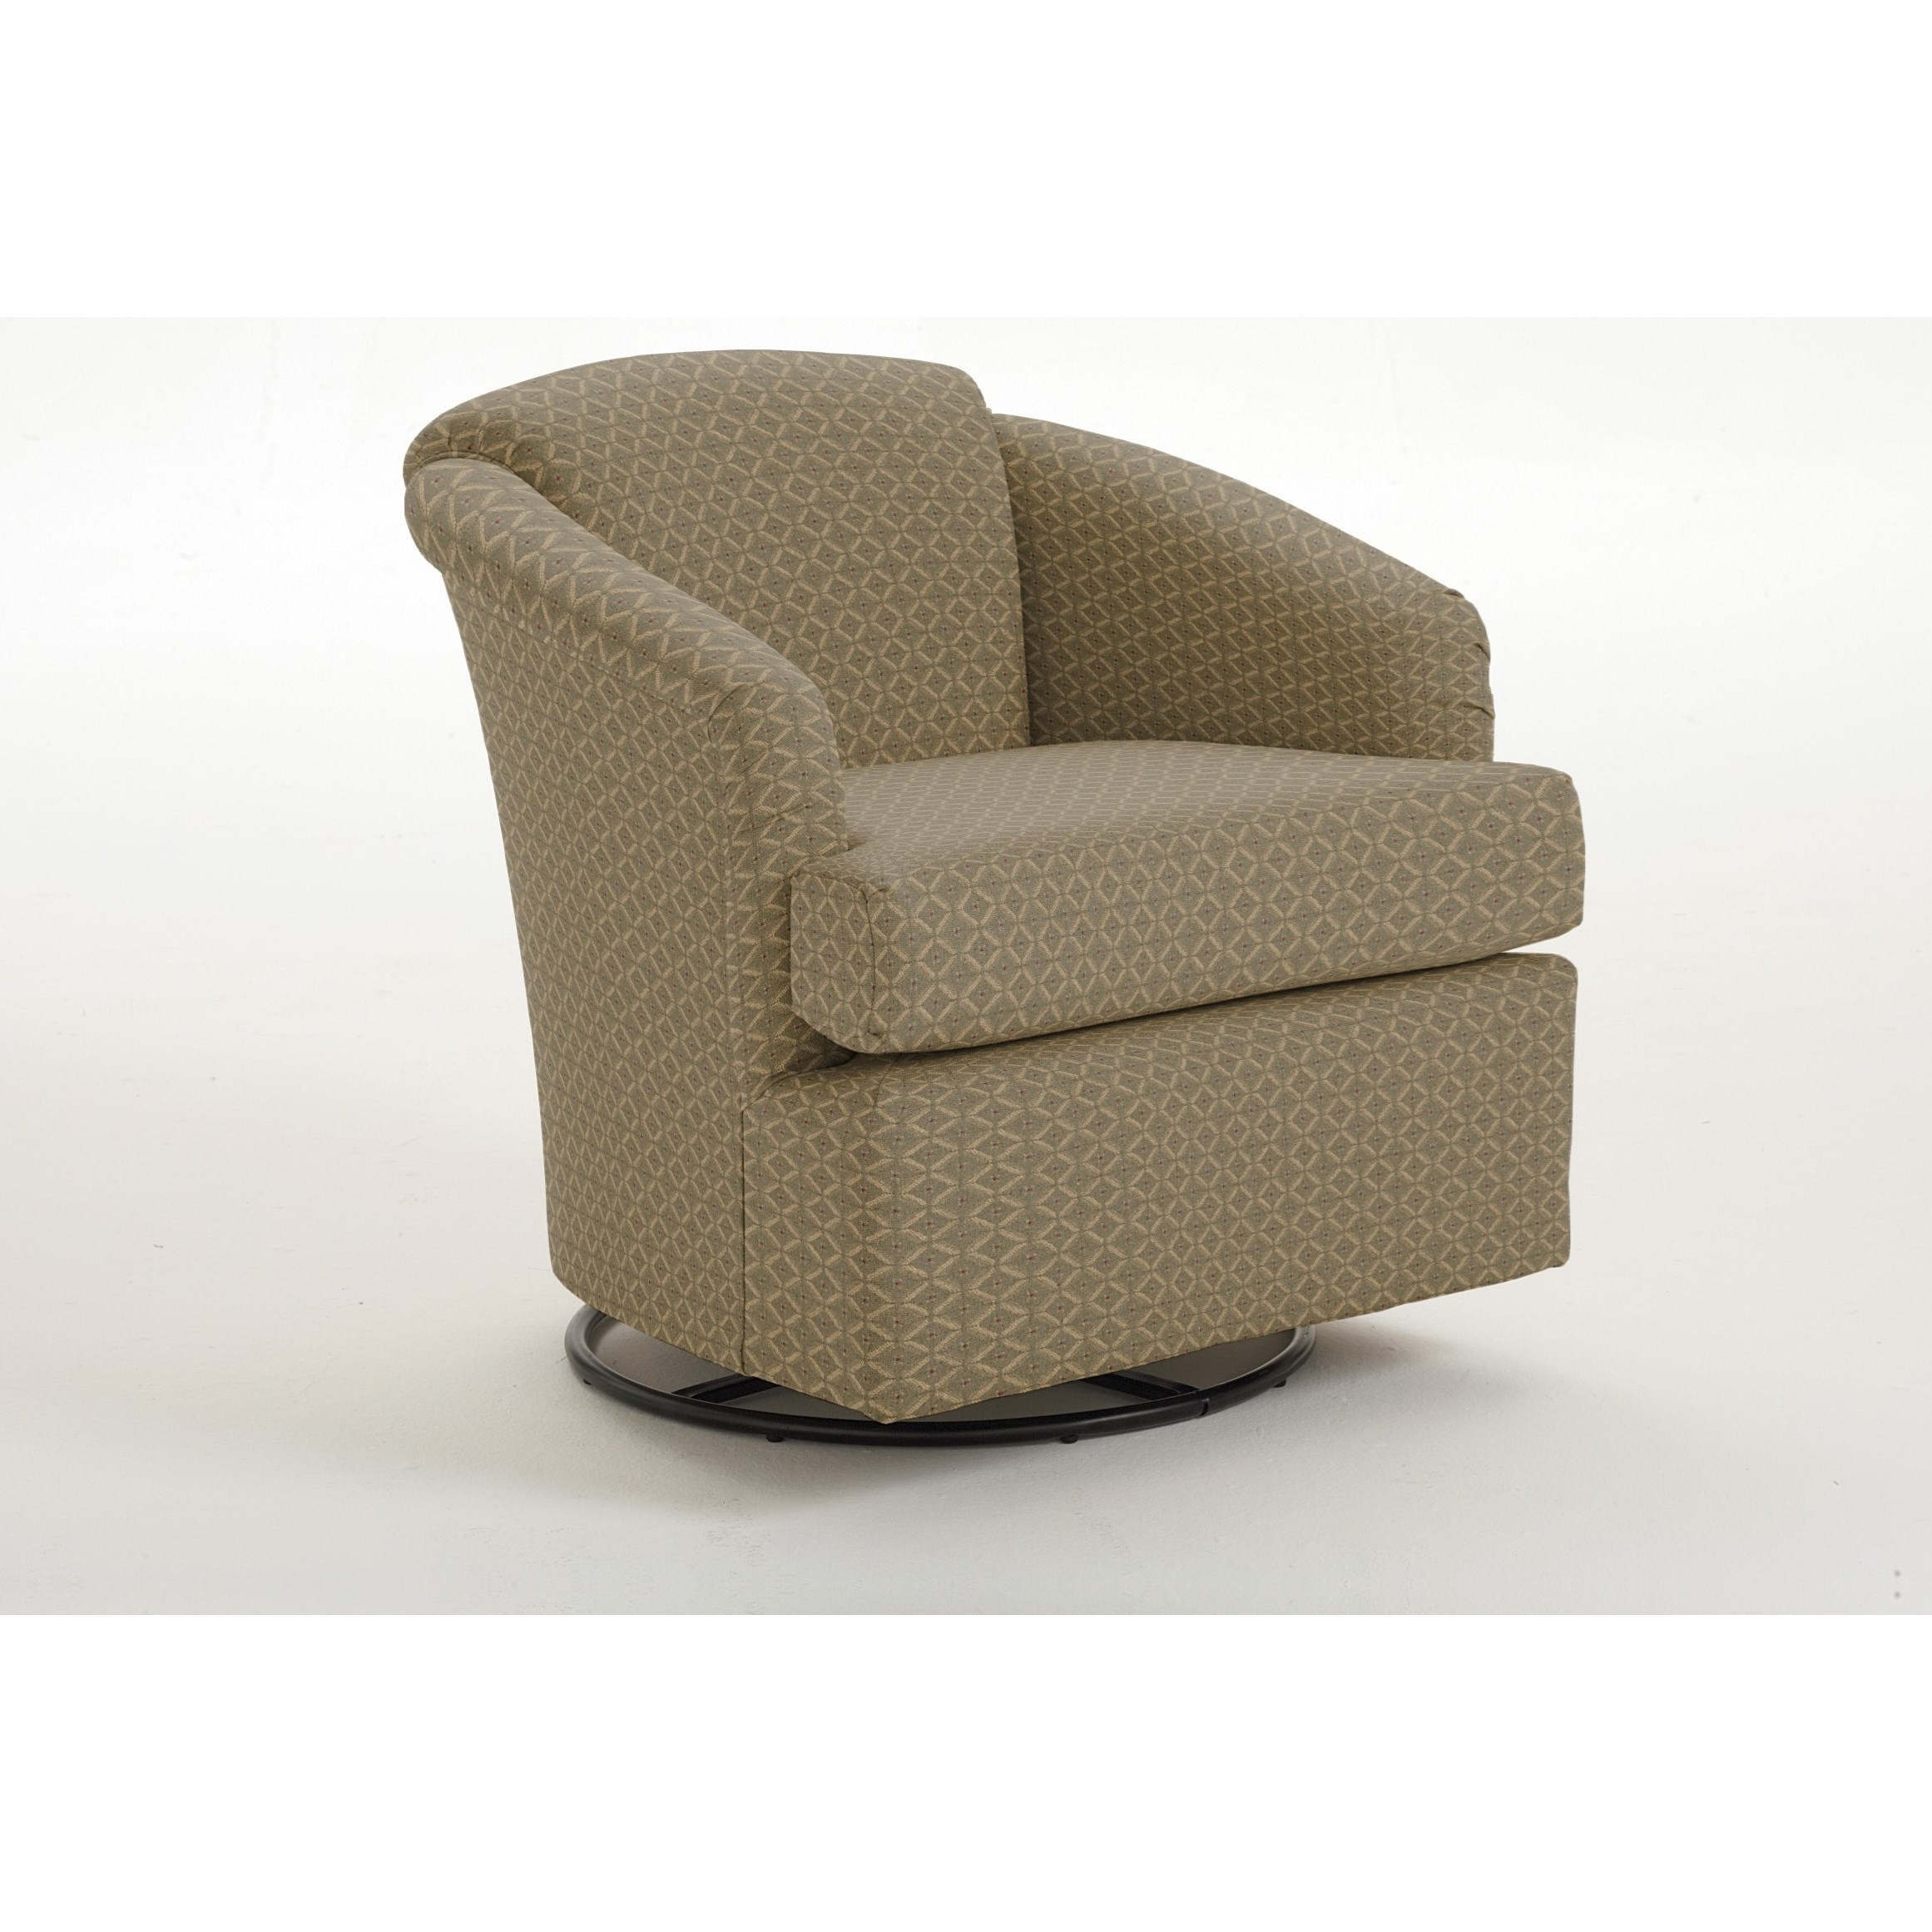 Cass Cass Swivel Chair by Best Home Furnishings at Fashion Furniture